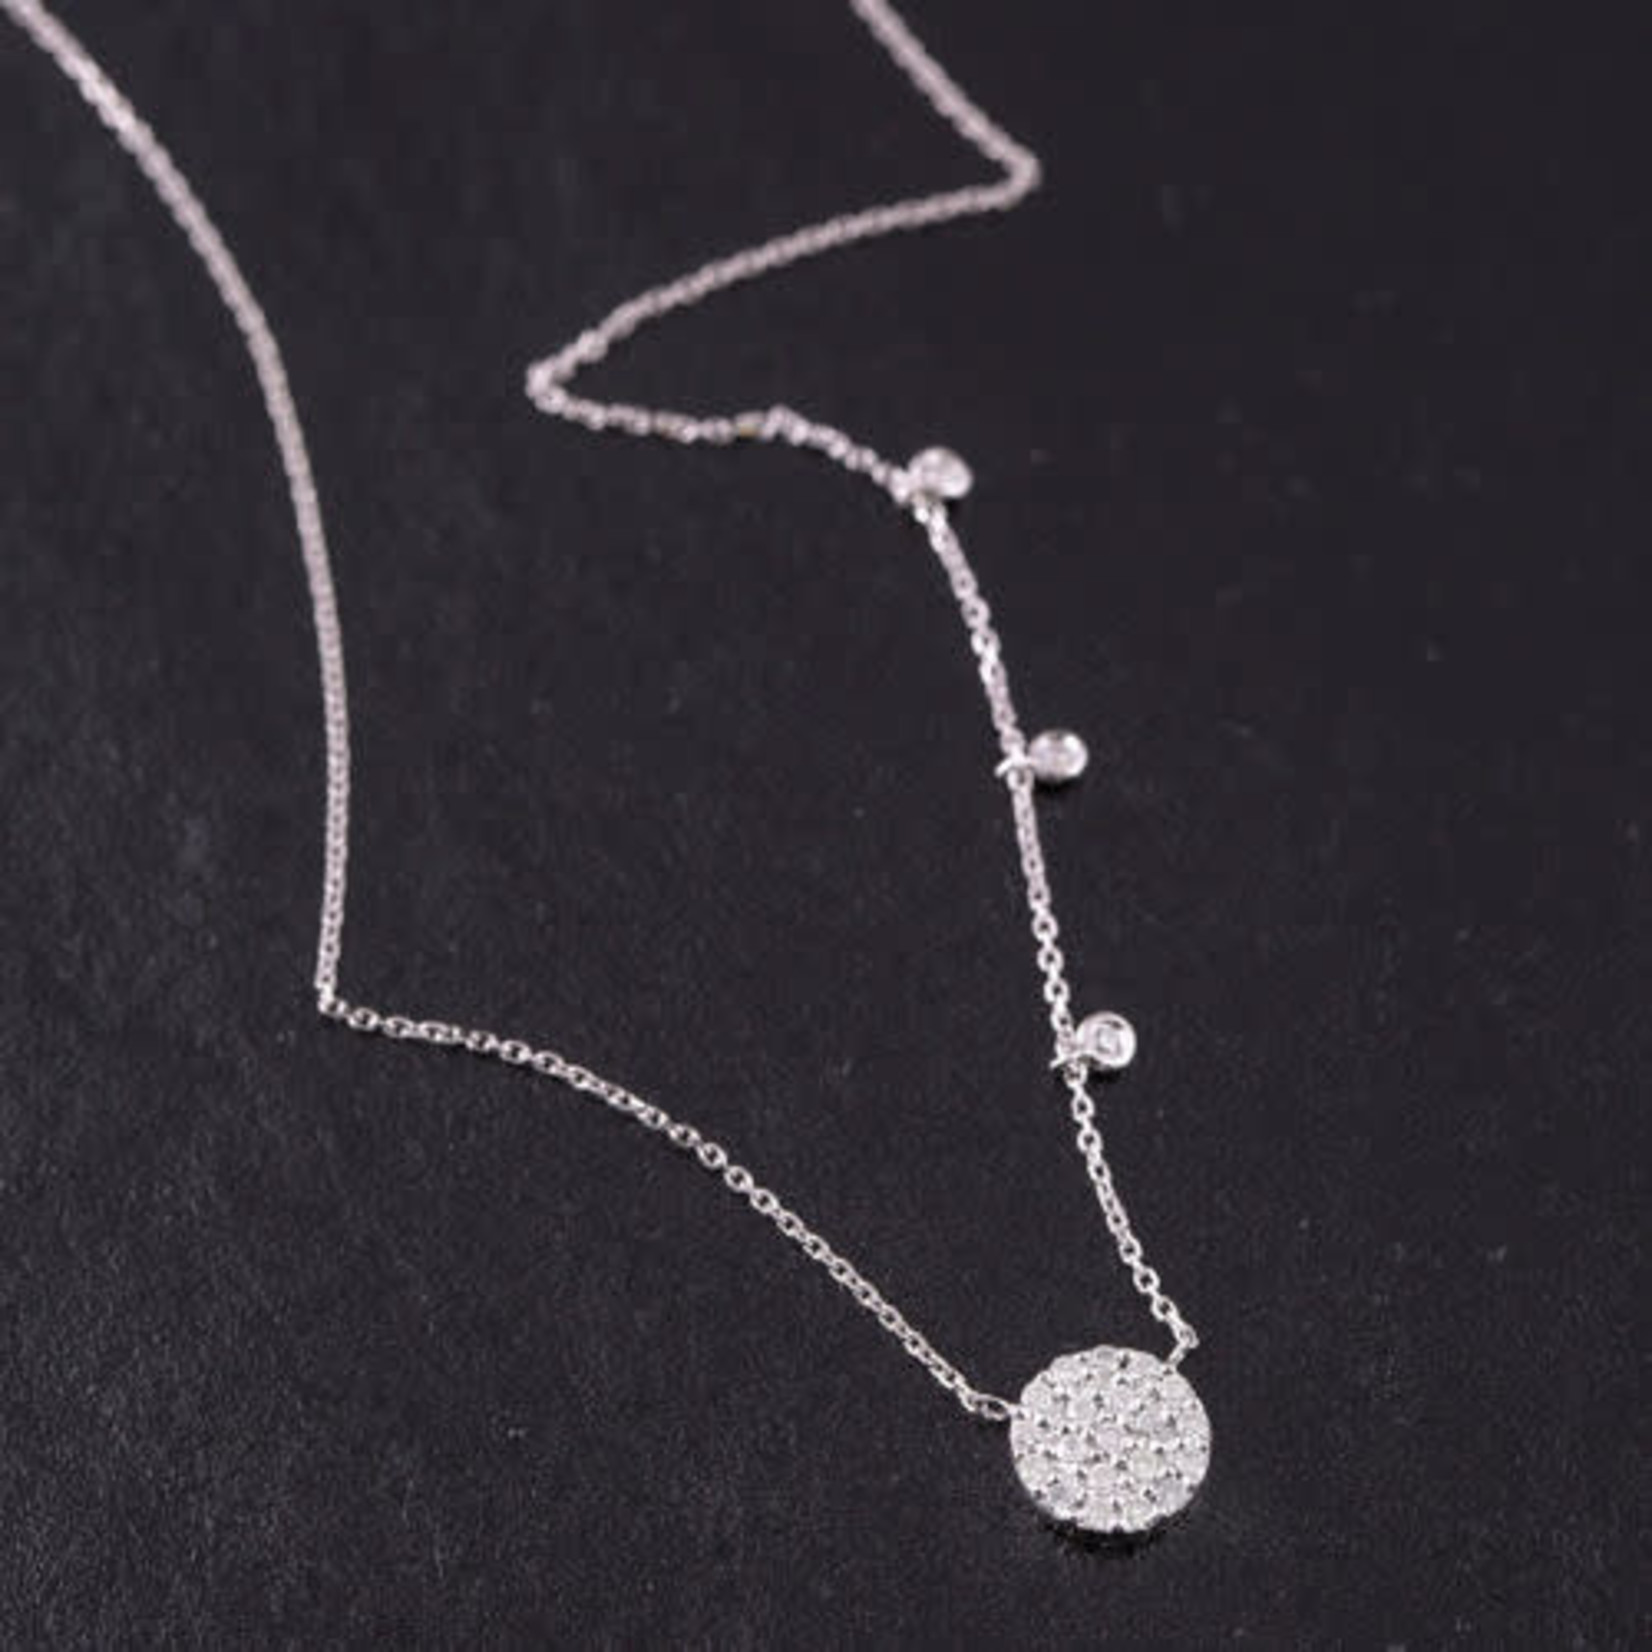 """14KW Gold Pave Diamond 0.25CT Disc with Diamond Bezel Accent Necklace 16-18"""""""